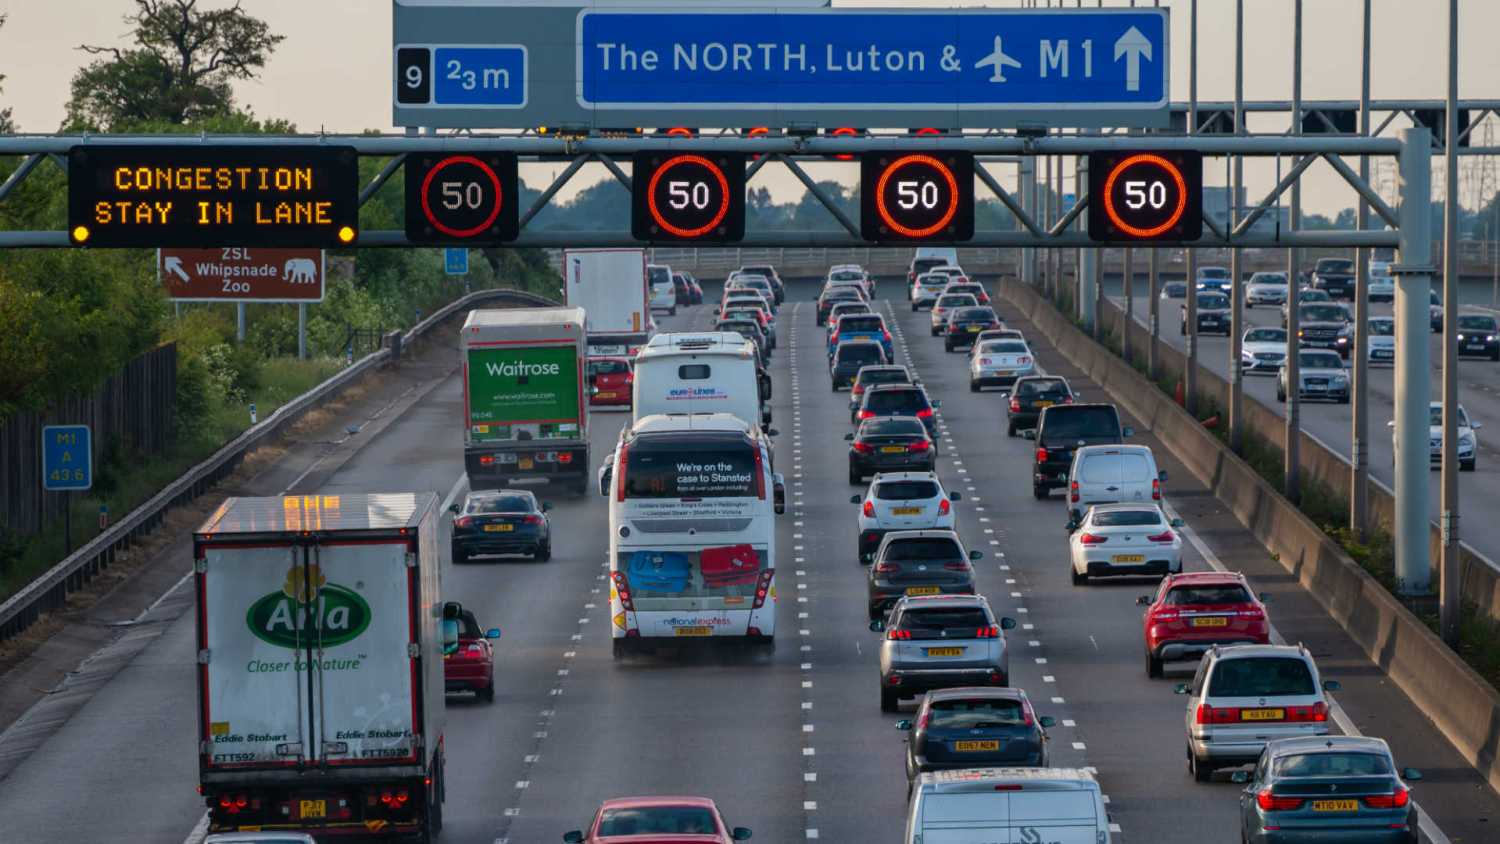 Congestion on the M1 motorway